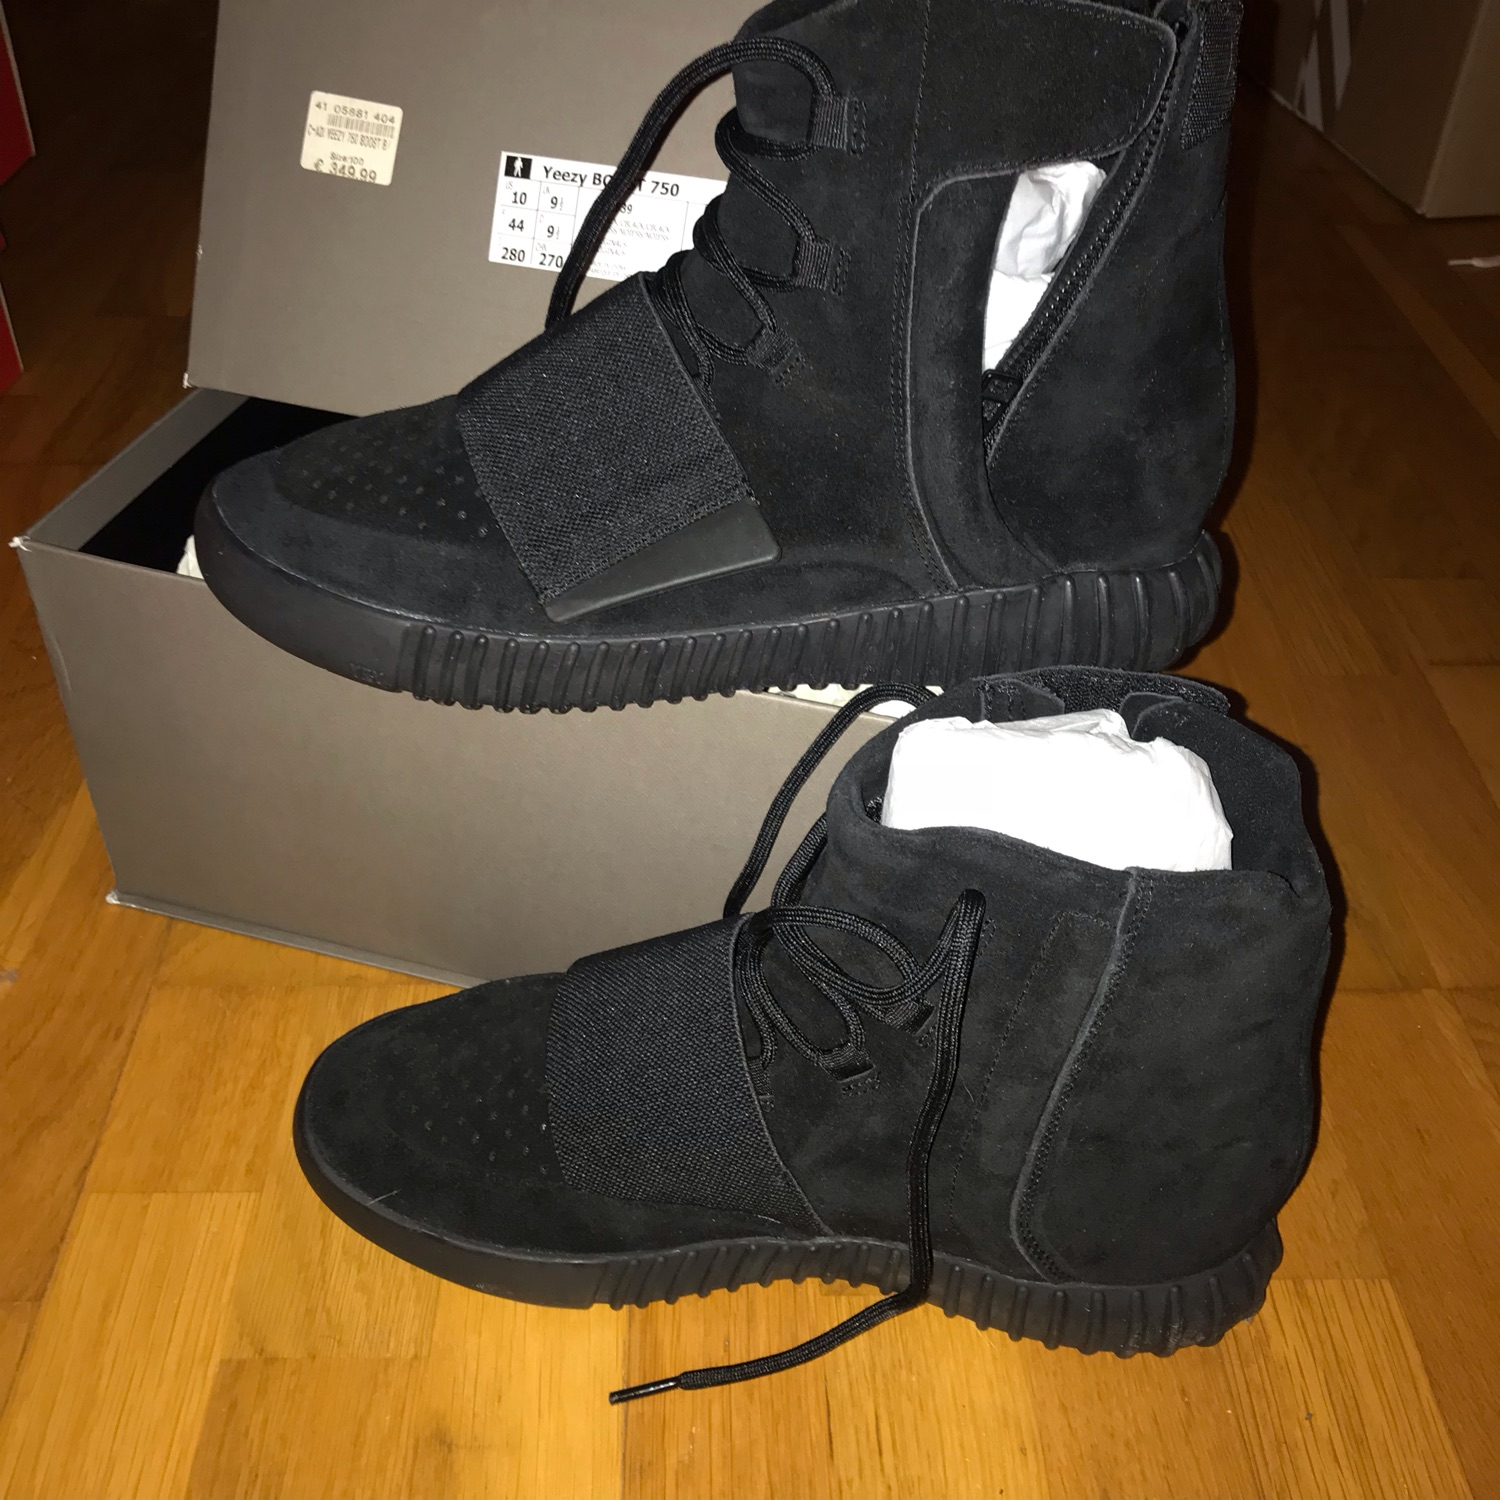 premium selection 60f47 bc830 Adidas Yeezy 750 Black - 10 Us